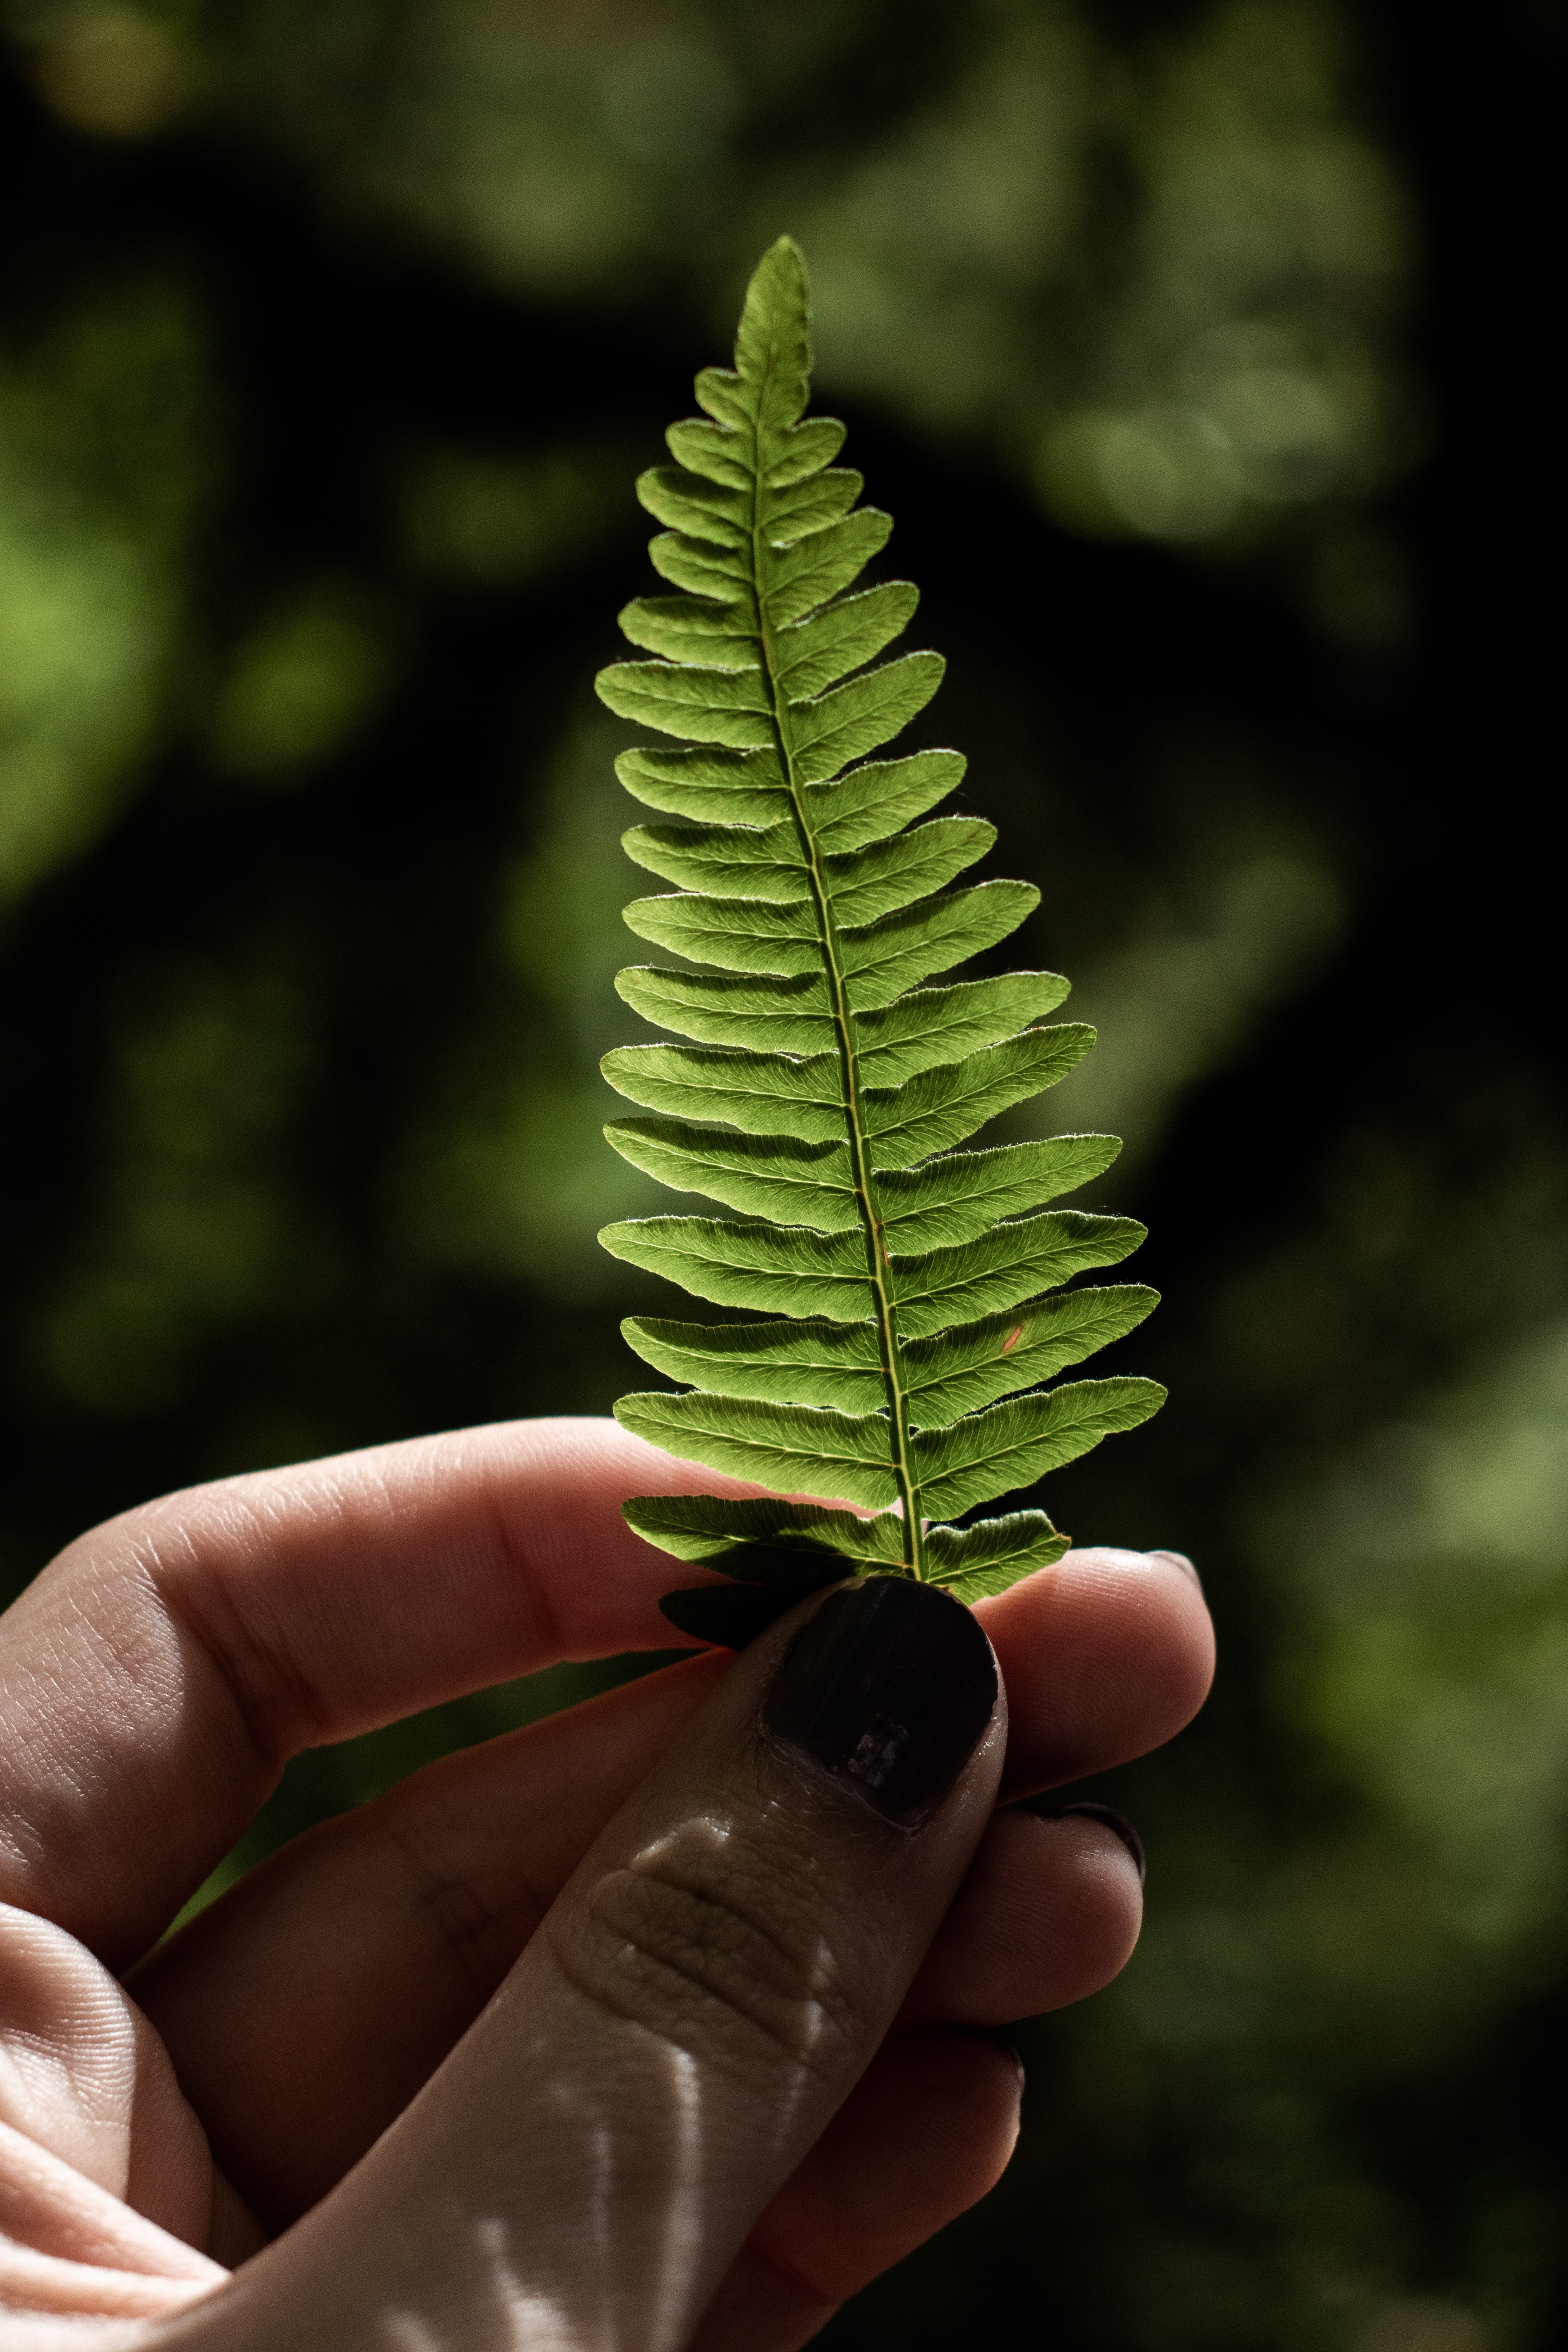 close up photography of person holding green fern plant